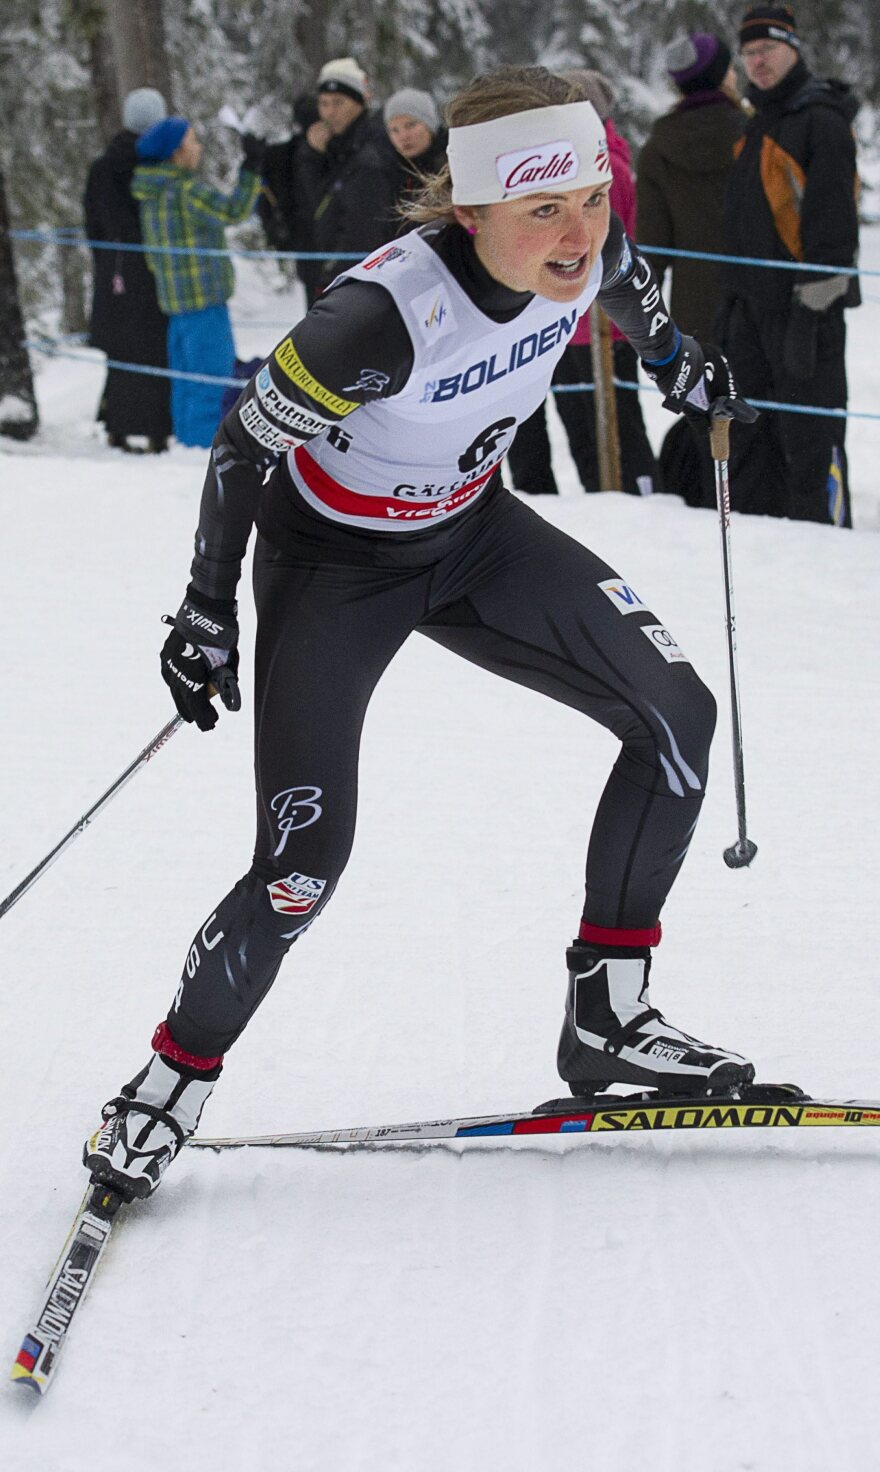 Holly Brooks competes in the 2012 Cross-Country World Cup tour in Sweden. If she makes it to Sochi, it would be her second Olympics.